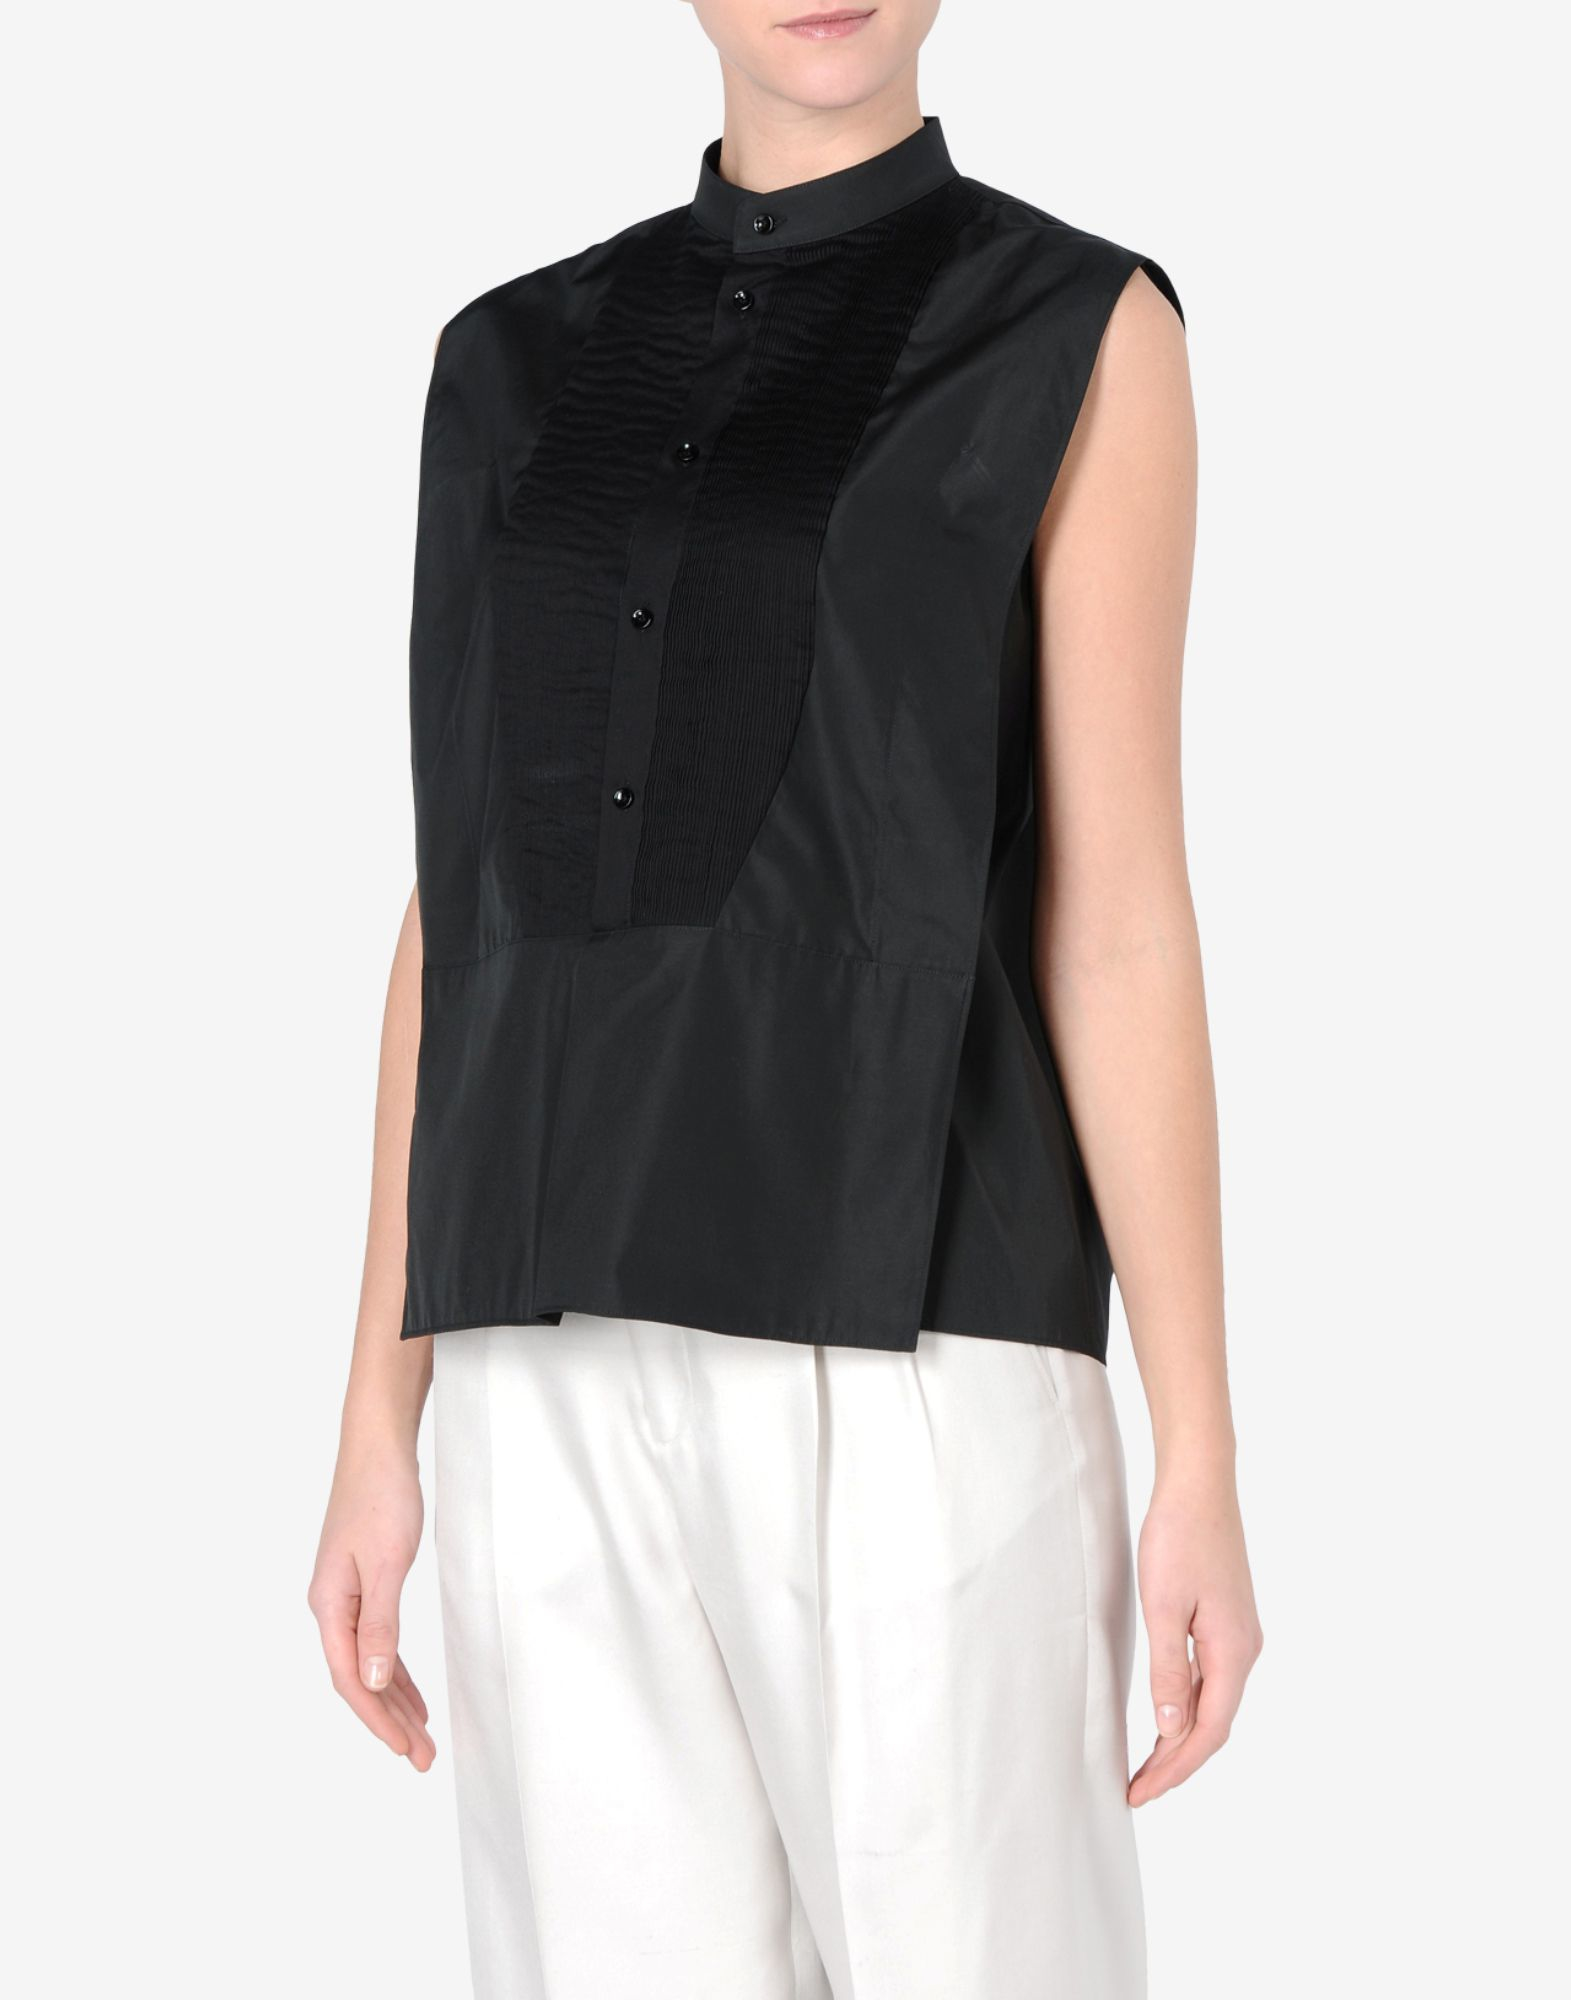 White Cotton Sleeveless Blouse With Collar Black Dressy